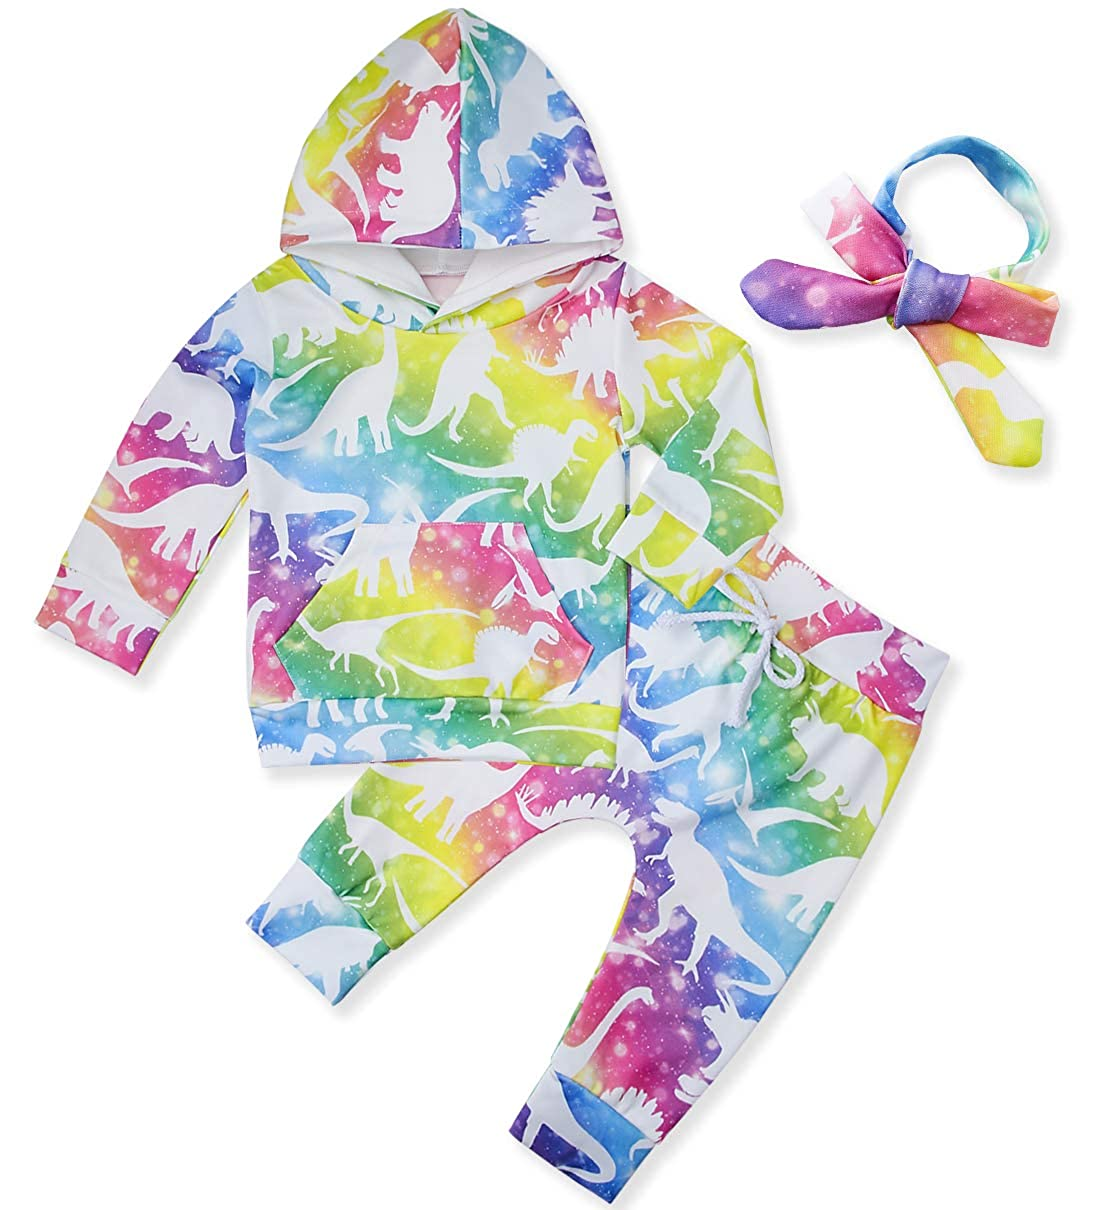 chicolife Newborn Baby Boy Girl Clothes Set Long Sleeve Hooded Sweatshirts Outfits Unisex Tracksuits 0-24Month